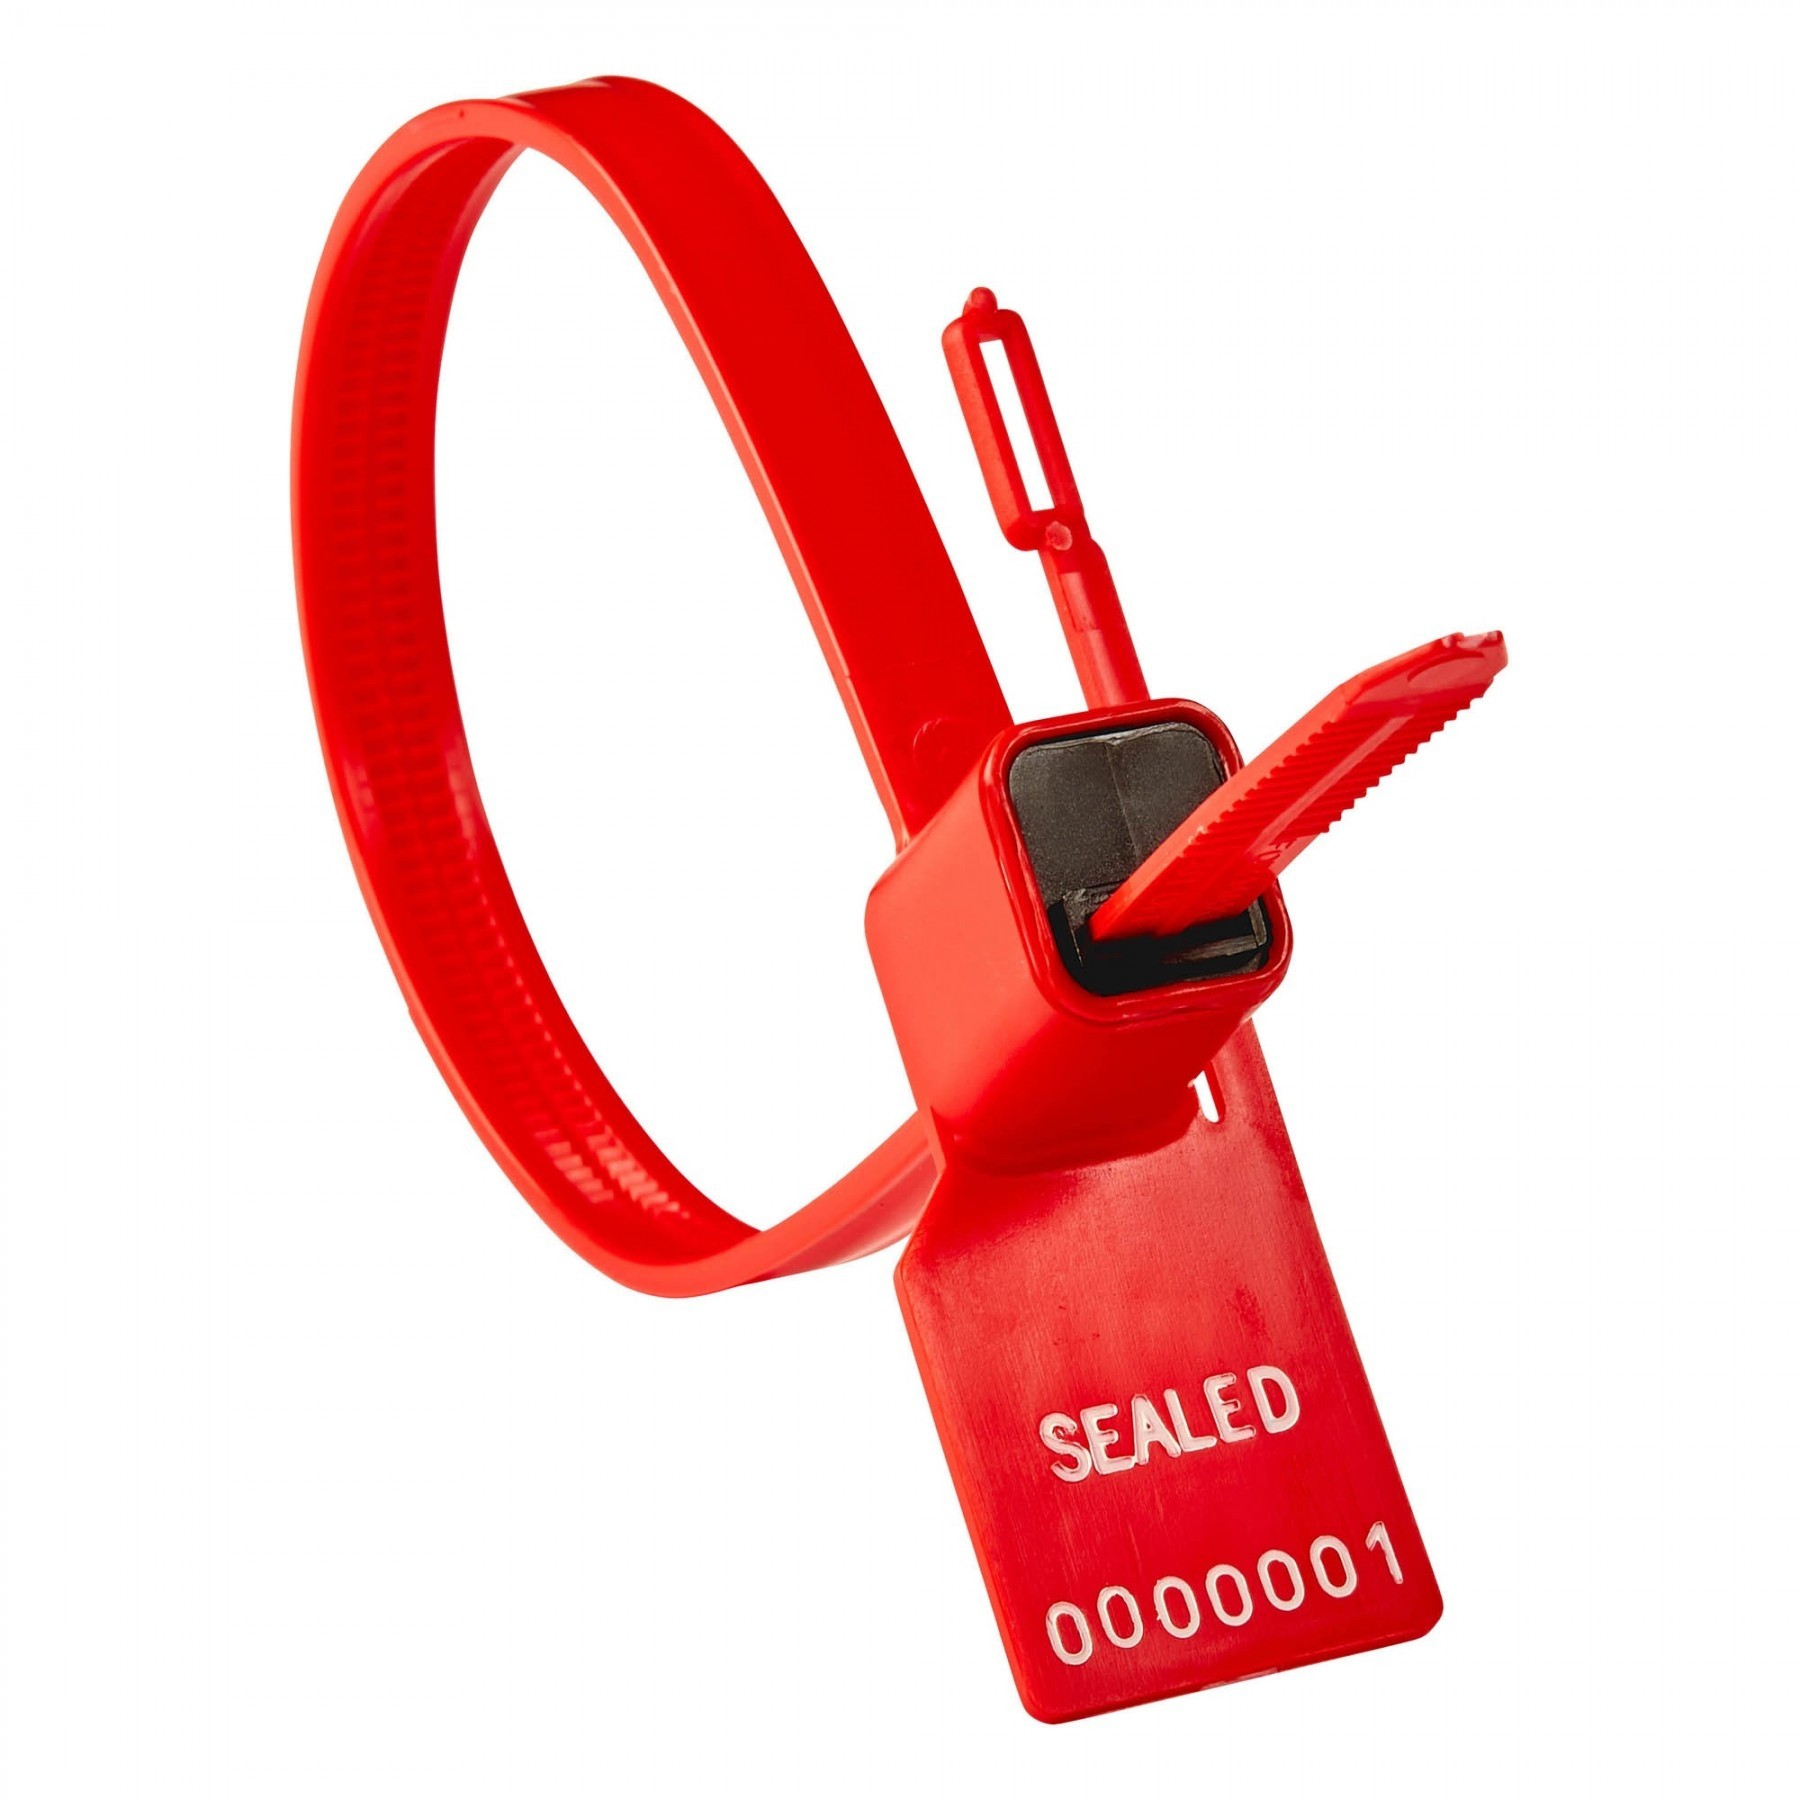 Red Heavy Duty Security Seals - 100 lbs Breaking Strength